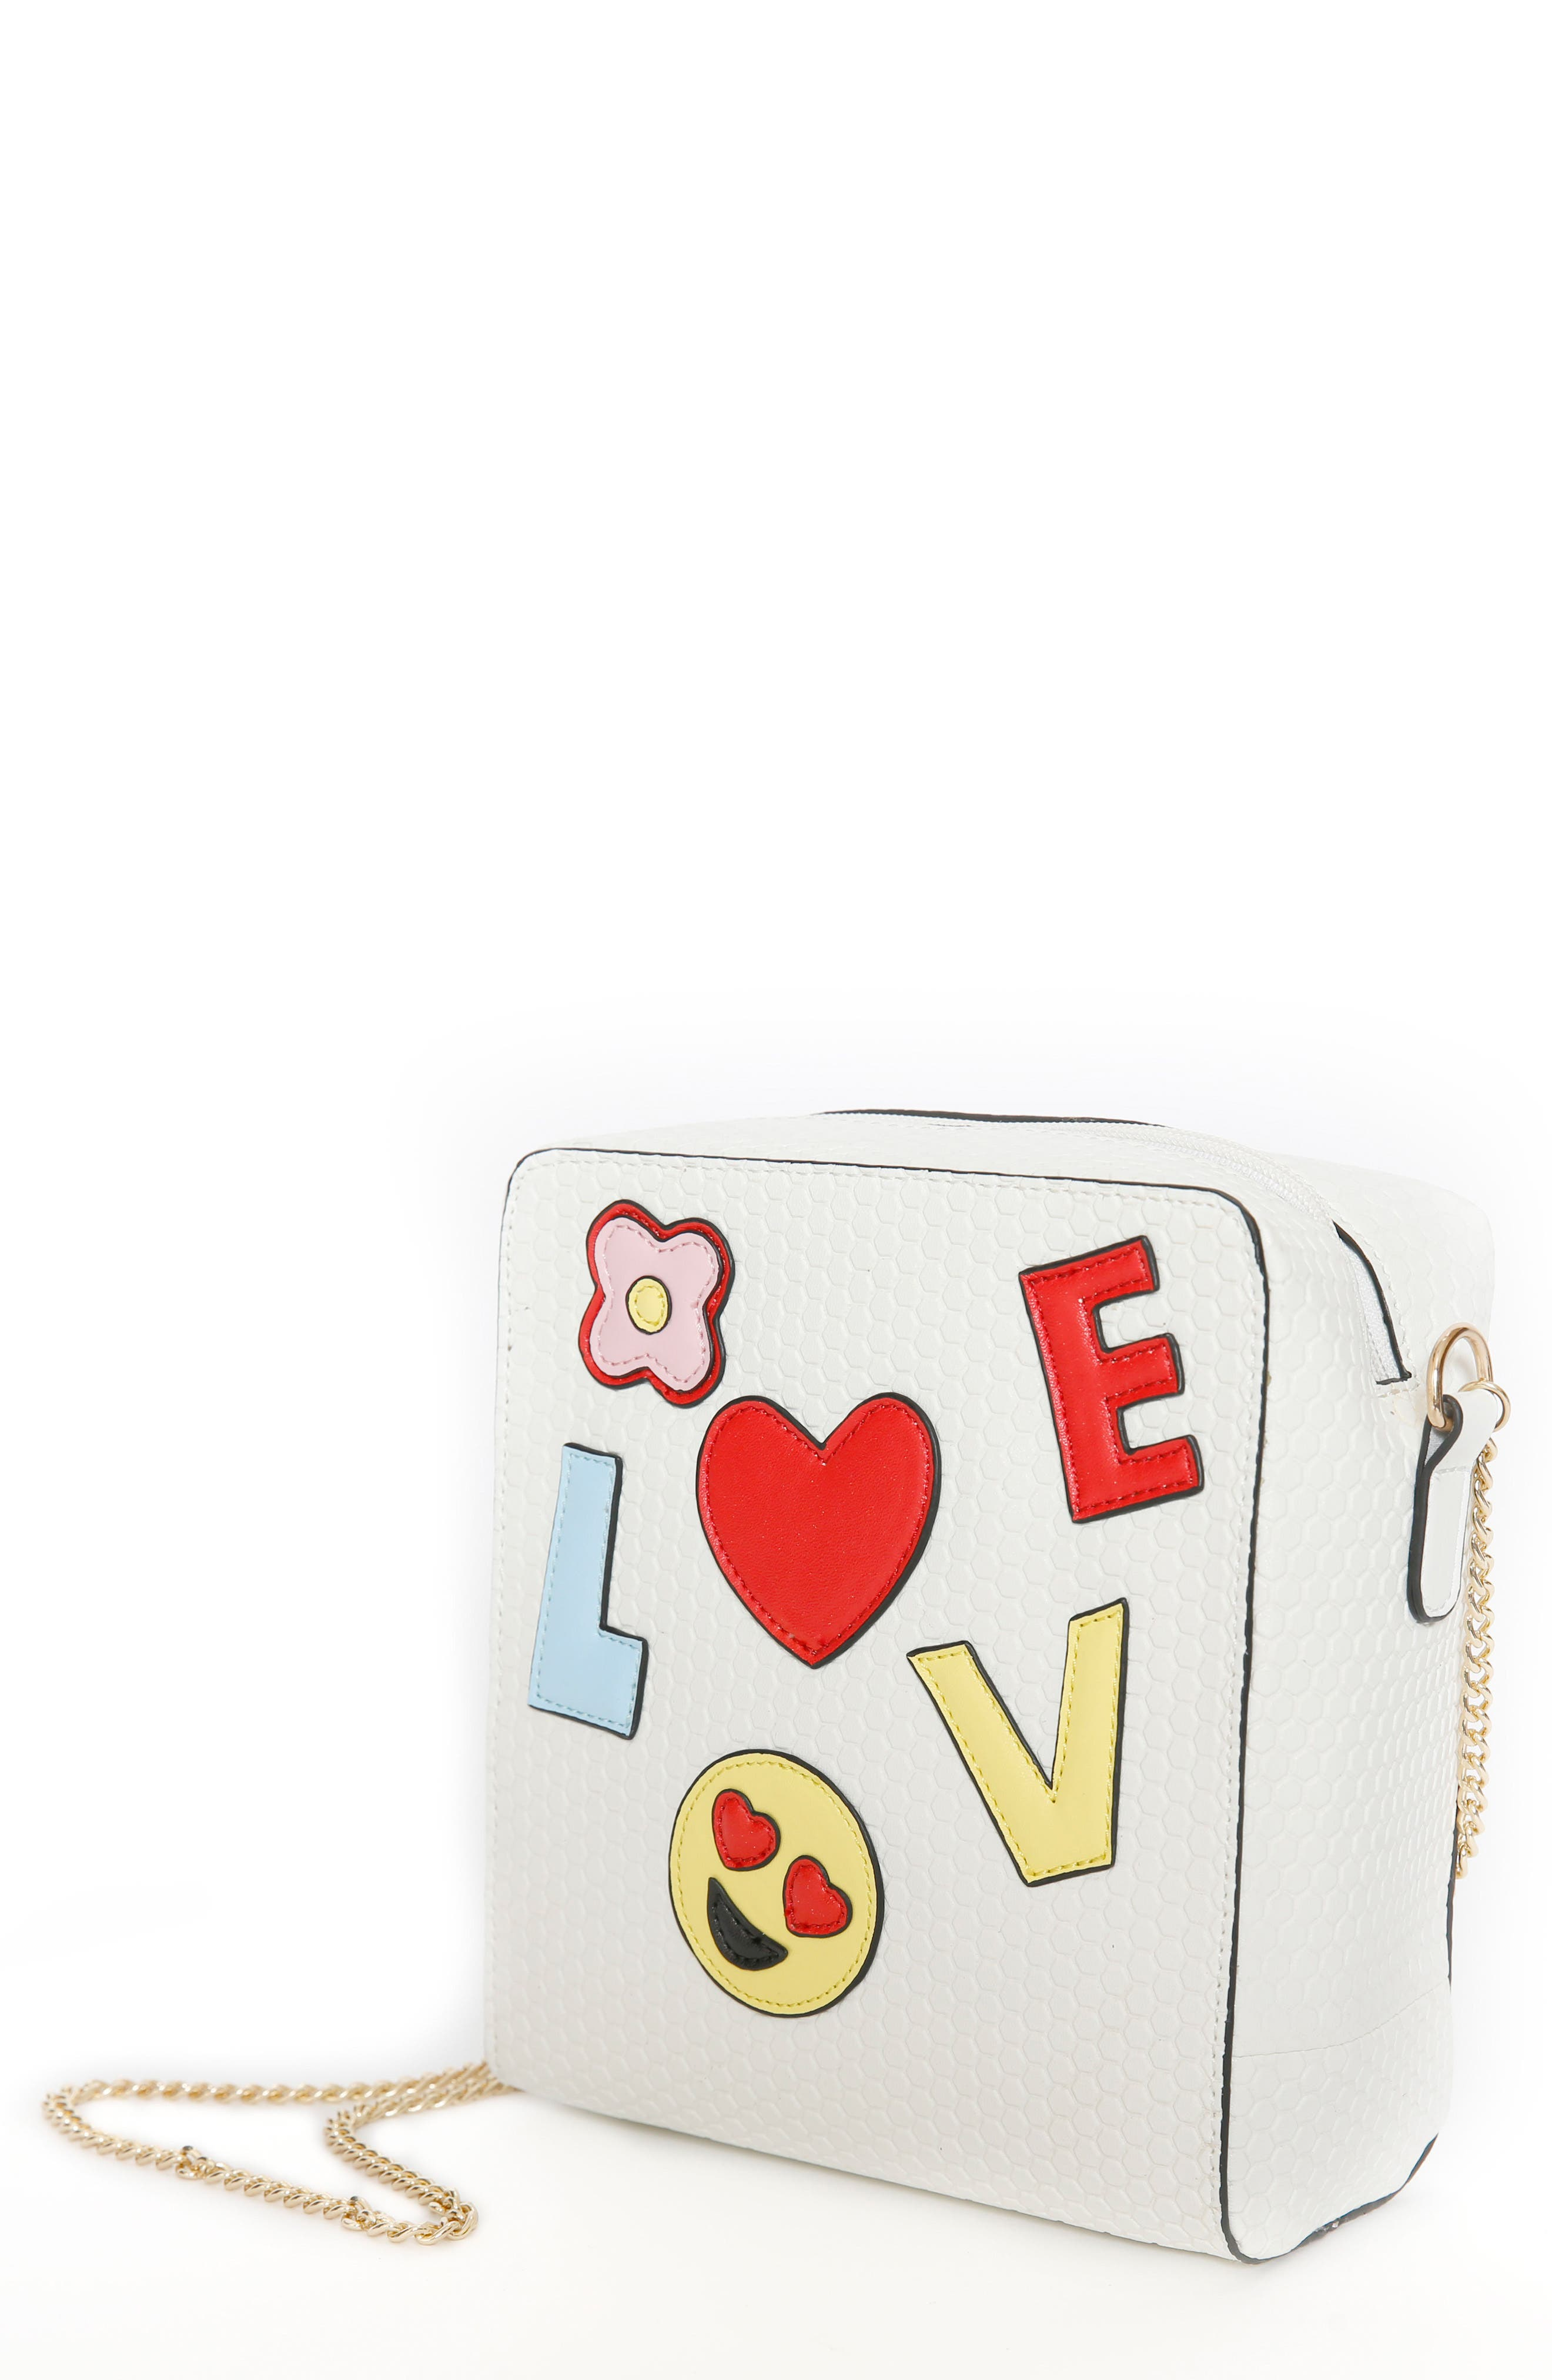 Emoji Love Faux Leather Crossbody Bag,                             Main thumbnail 1, color,                             White